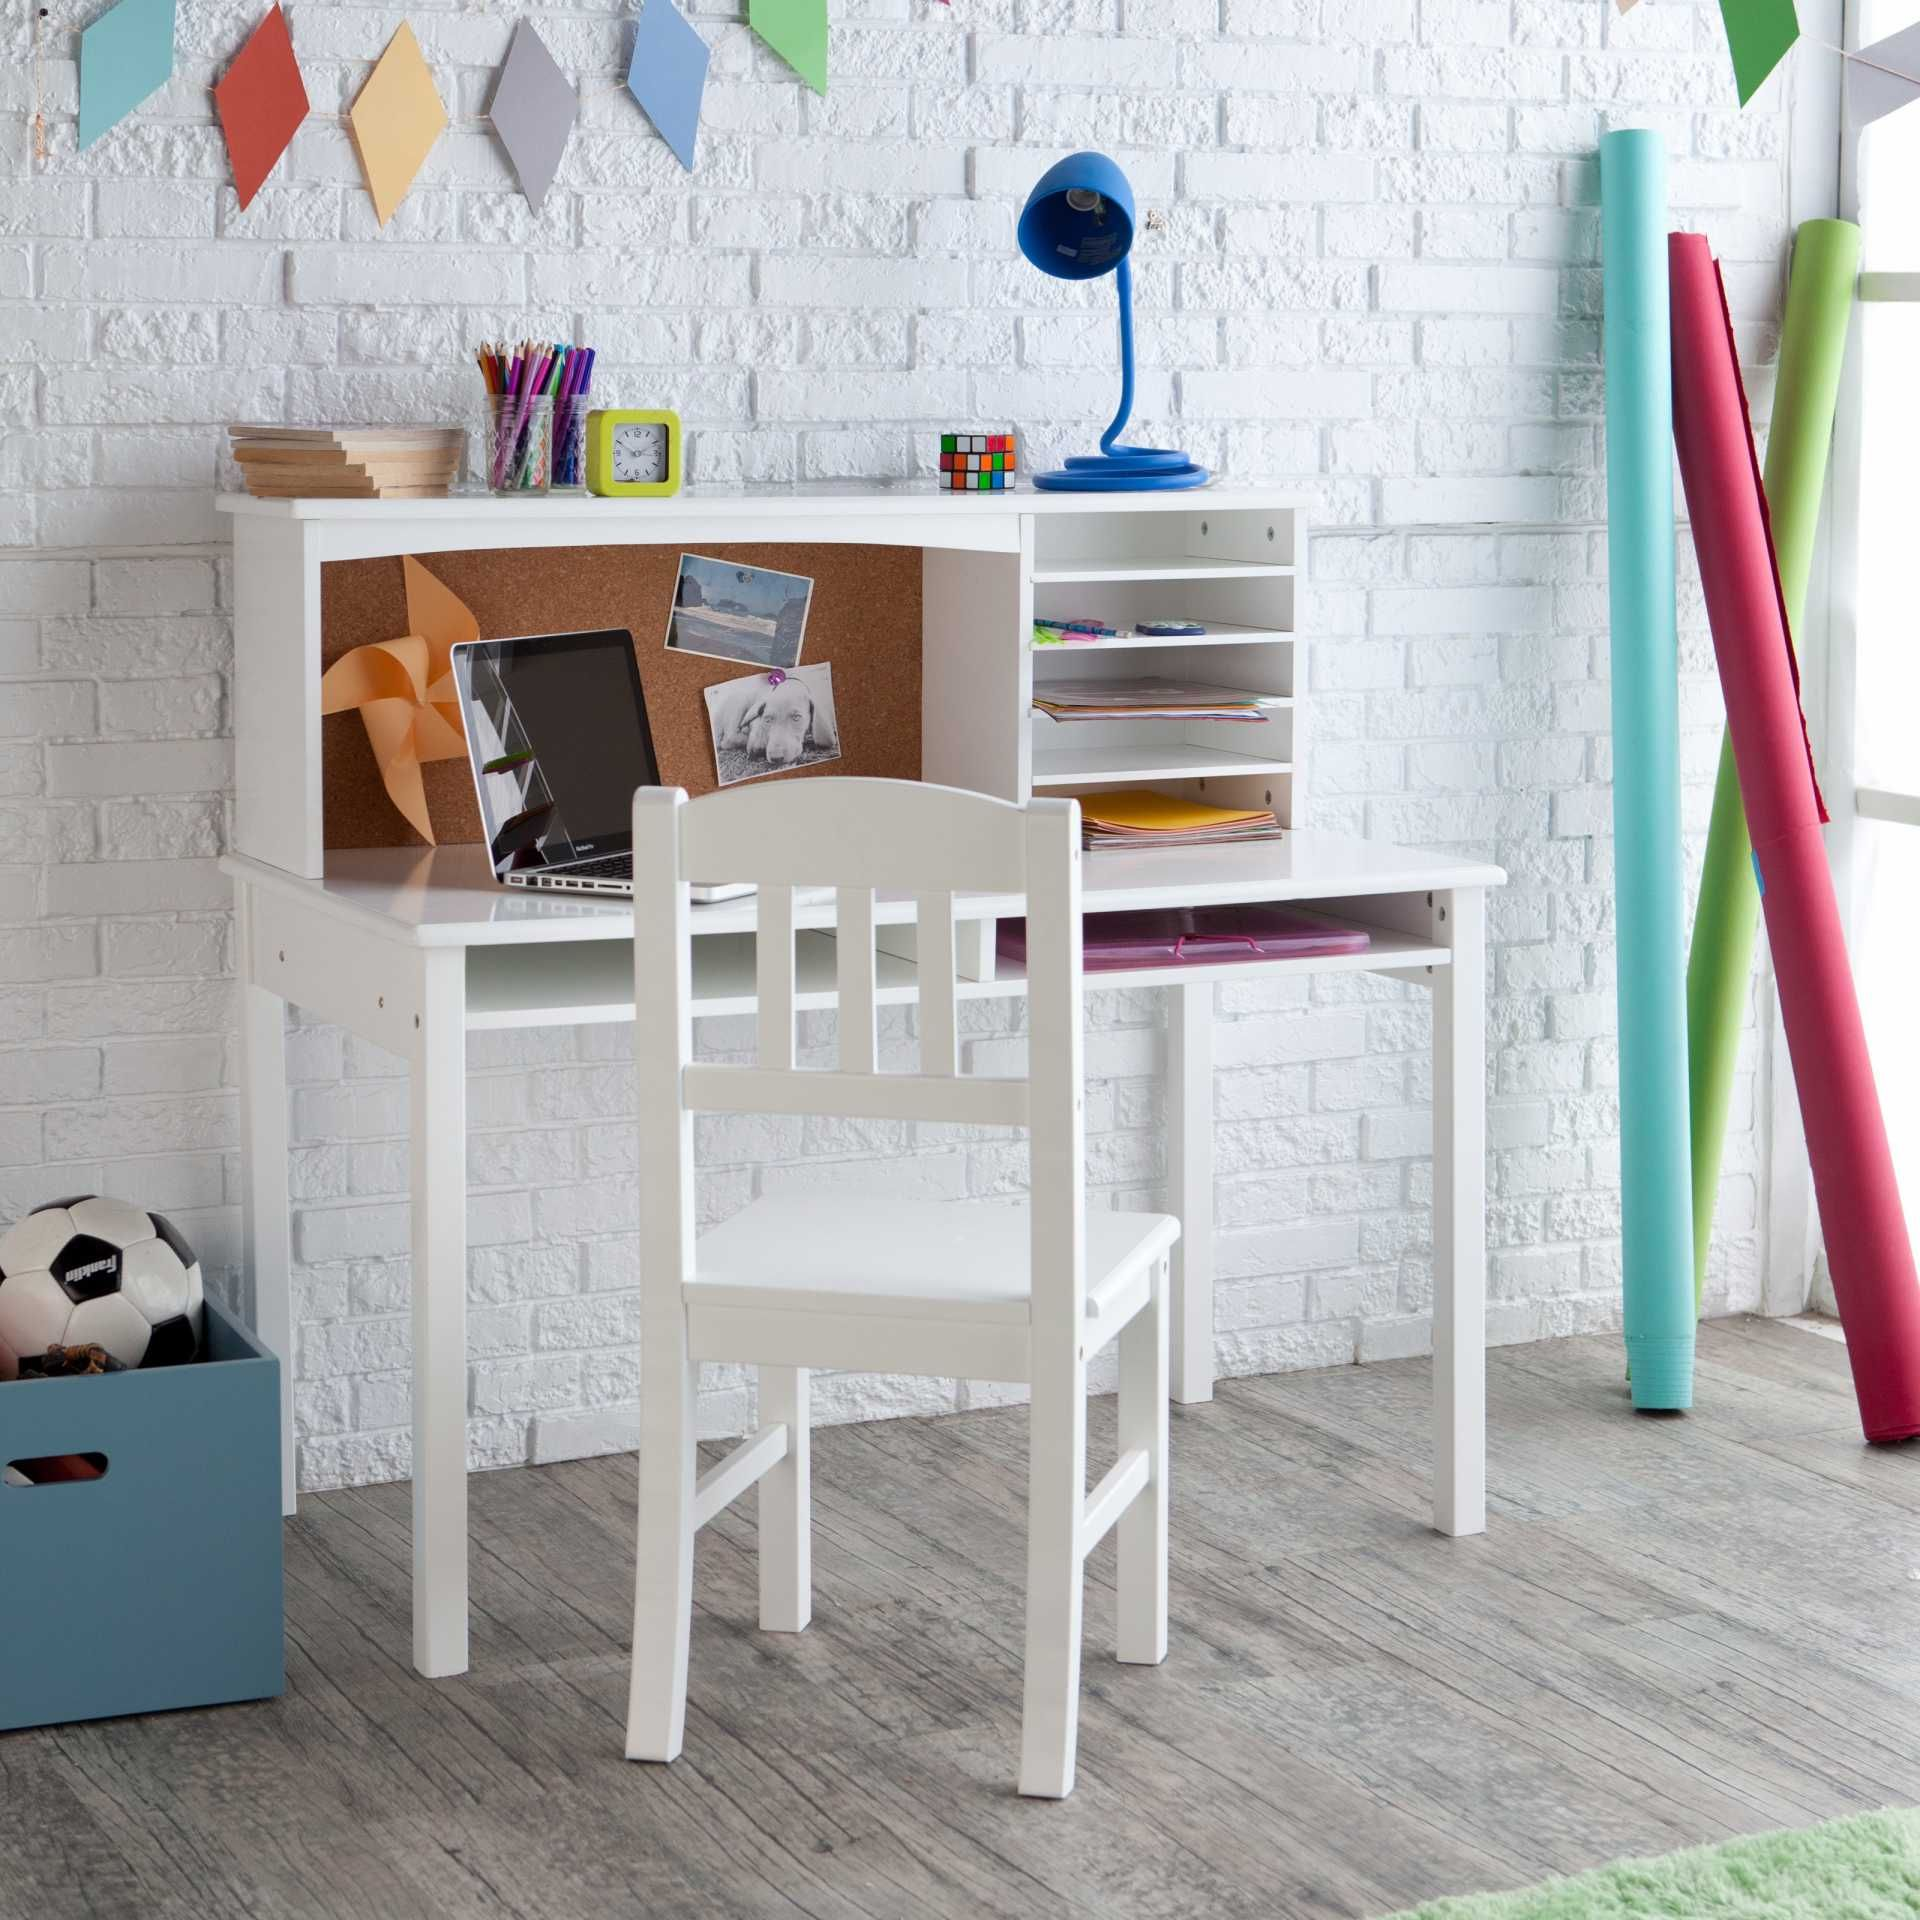 Ikea Kids Desk Design Of